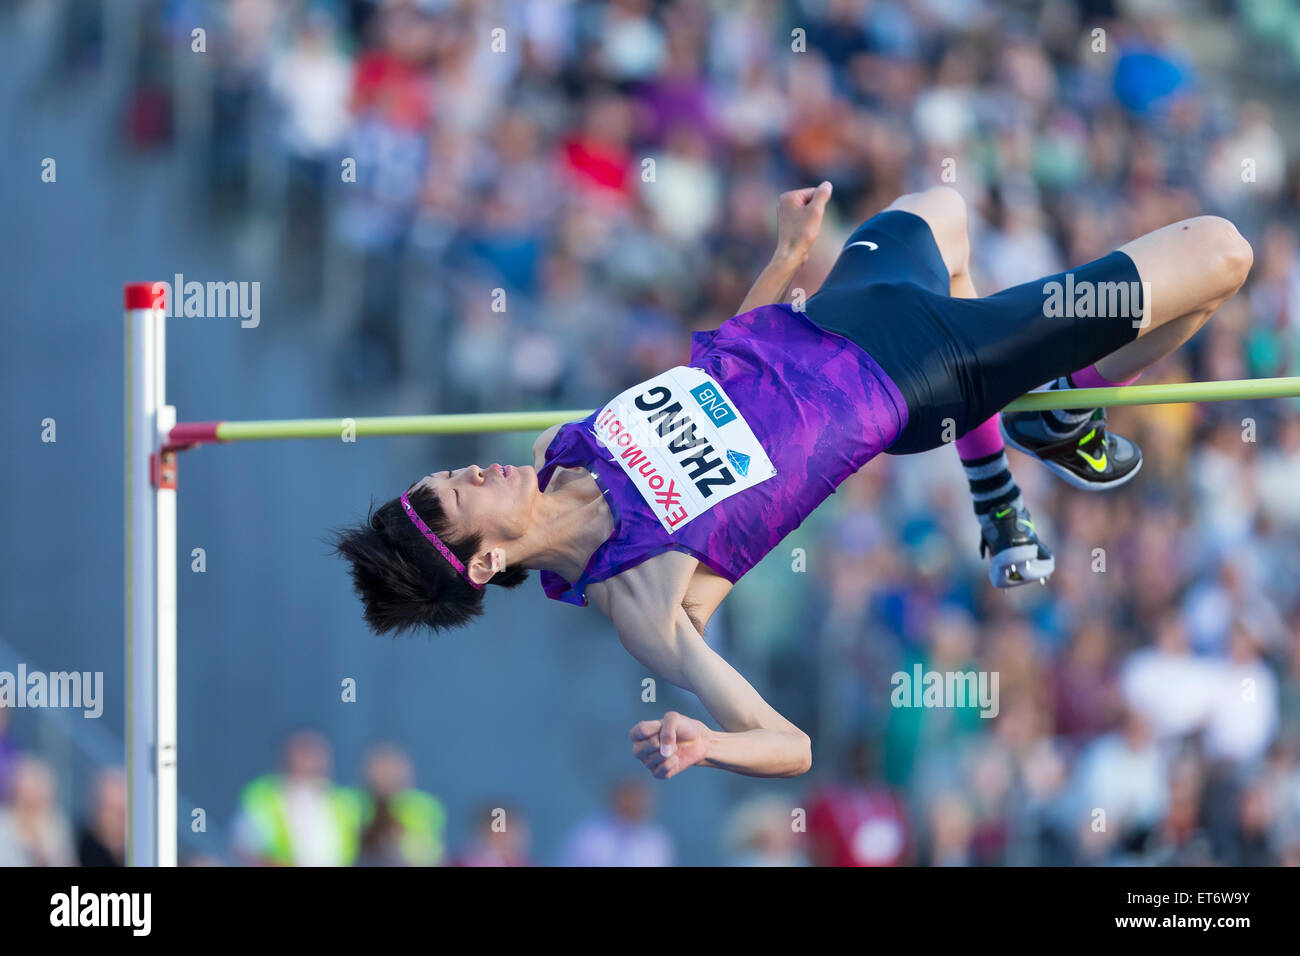 Oslo, Norvège. 11 Juin, 2015. Diamond League Bislett Games Guowei Zhang de la concurrence de la Chine dans Photo Stock